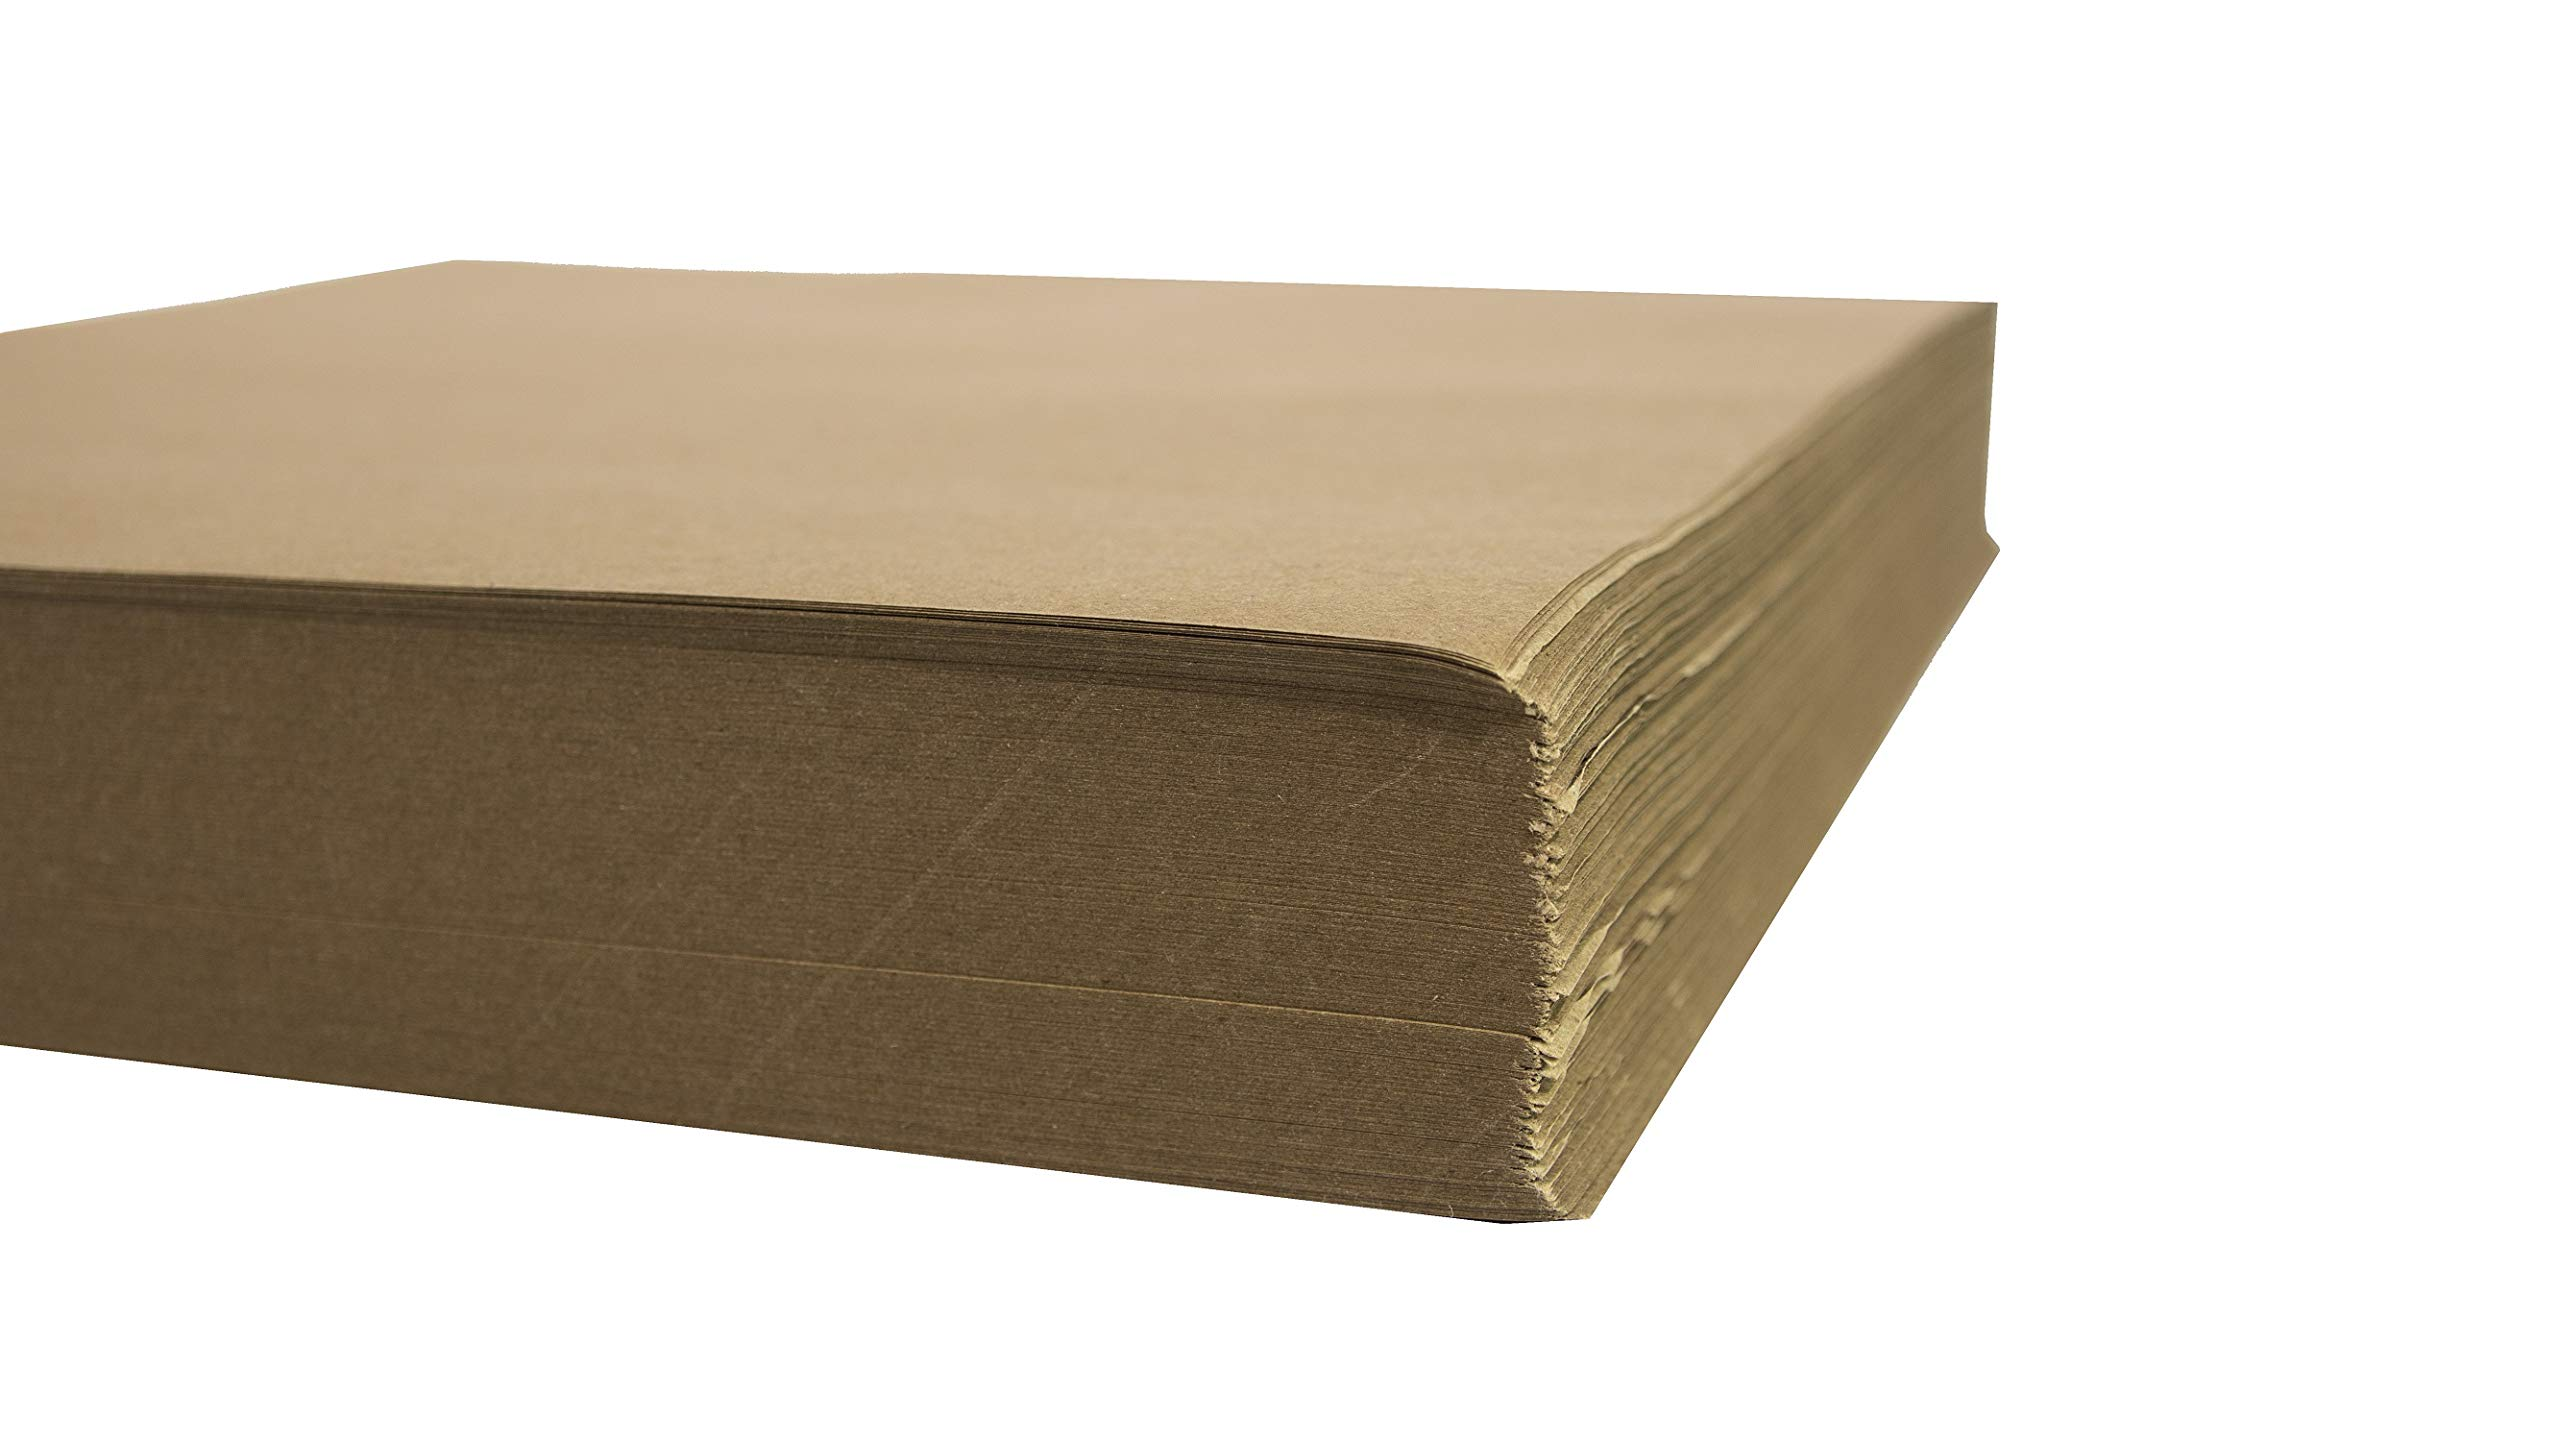 Crown Display 480 Count Kraft Paper Sheets ~ 80 GSM Brown Kraft Wrapping Paper Ream ~ Bulk Packaging for Shipping, Packing, Postal, Arts and Crafts (15 in. x 20 in. (1000 Square ft)) by Crown Display